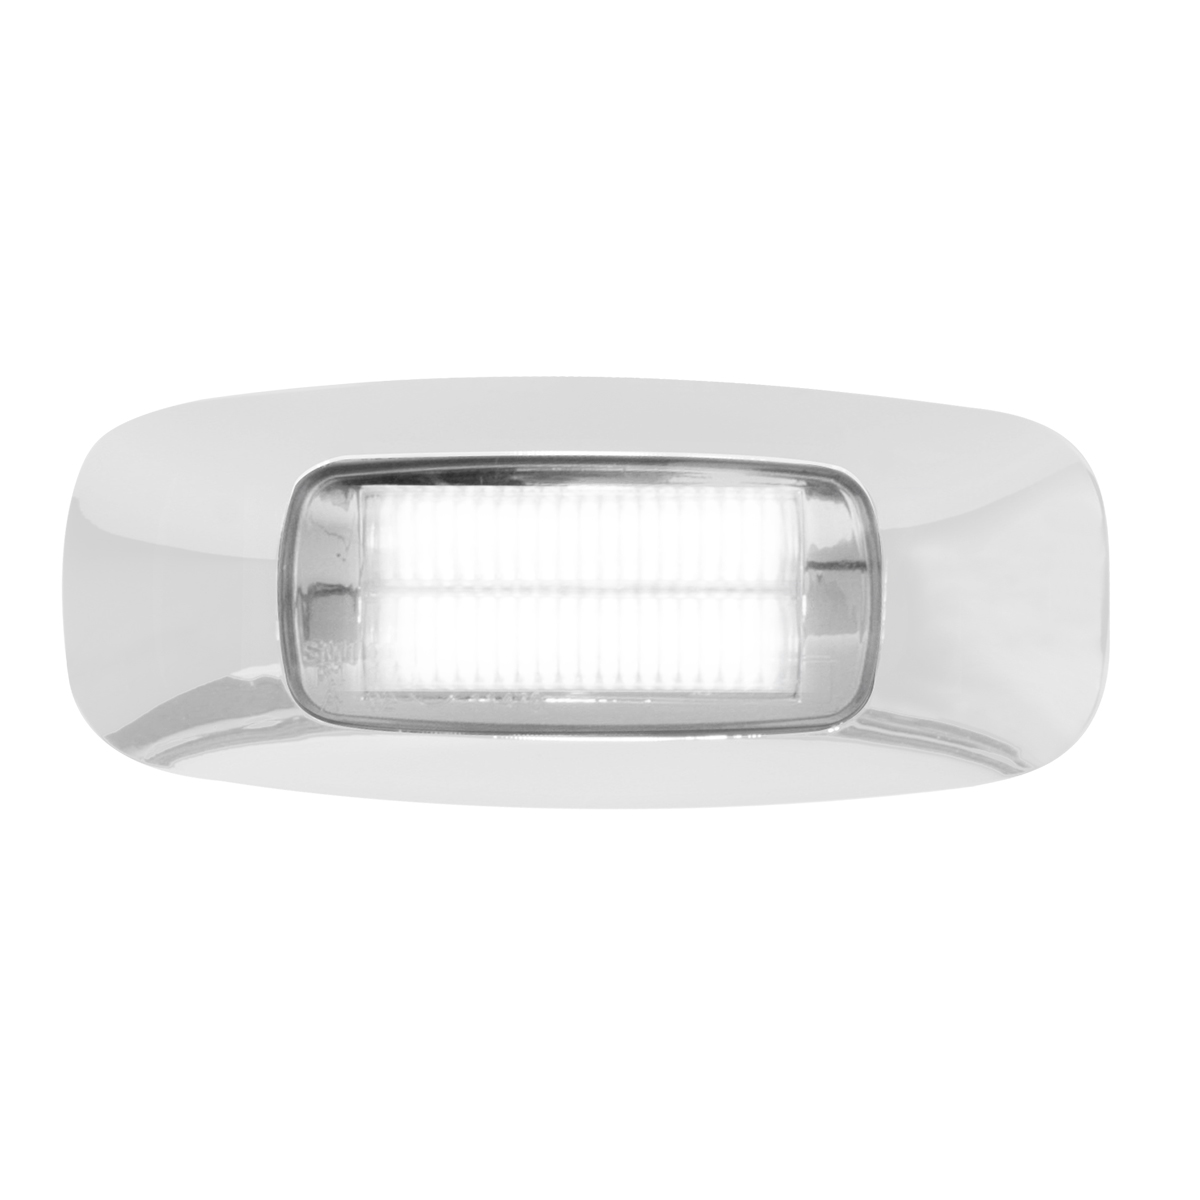 "74824 3.5"" Rectangular Prime LED Marker Light in White/Clear"